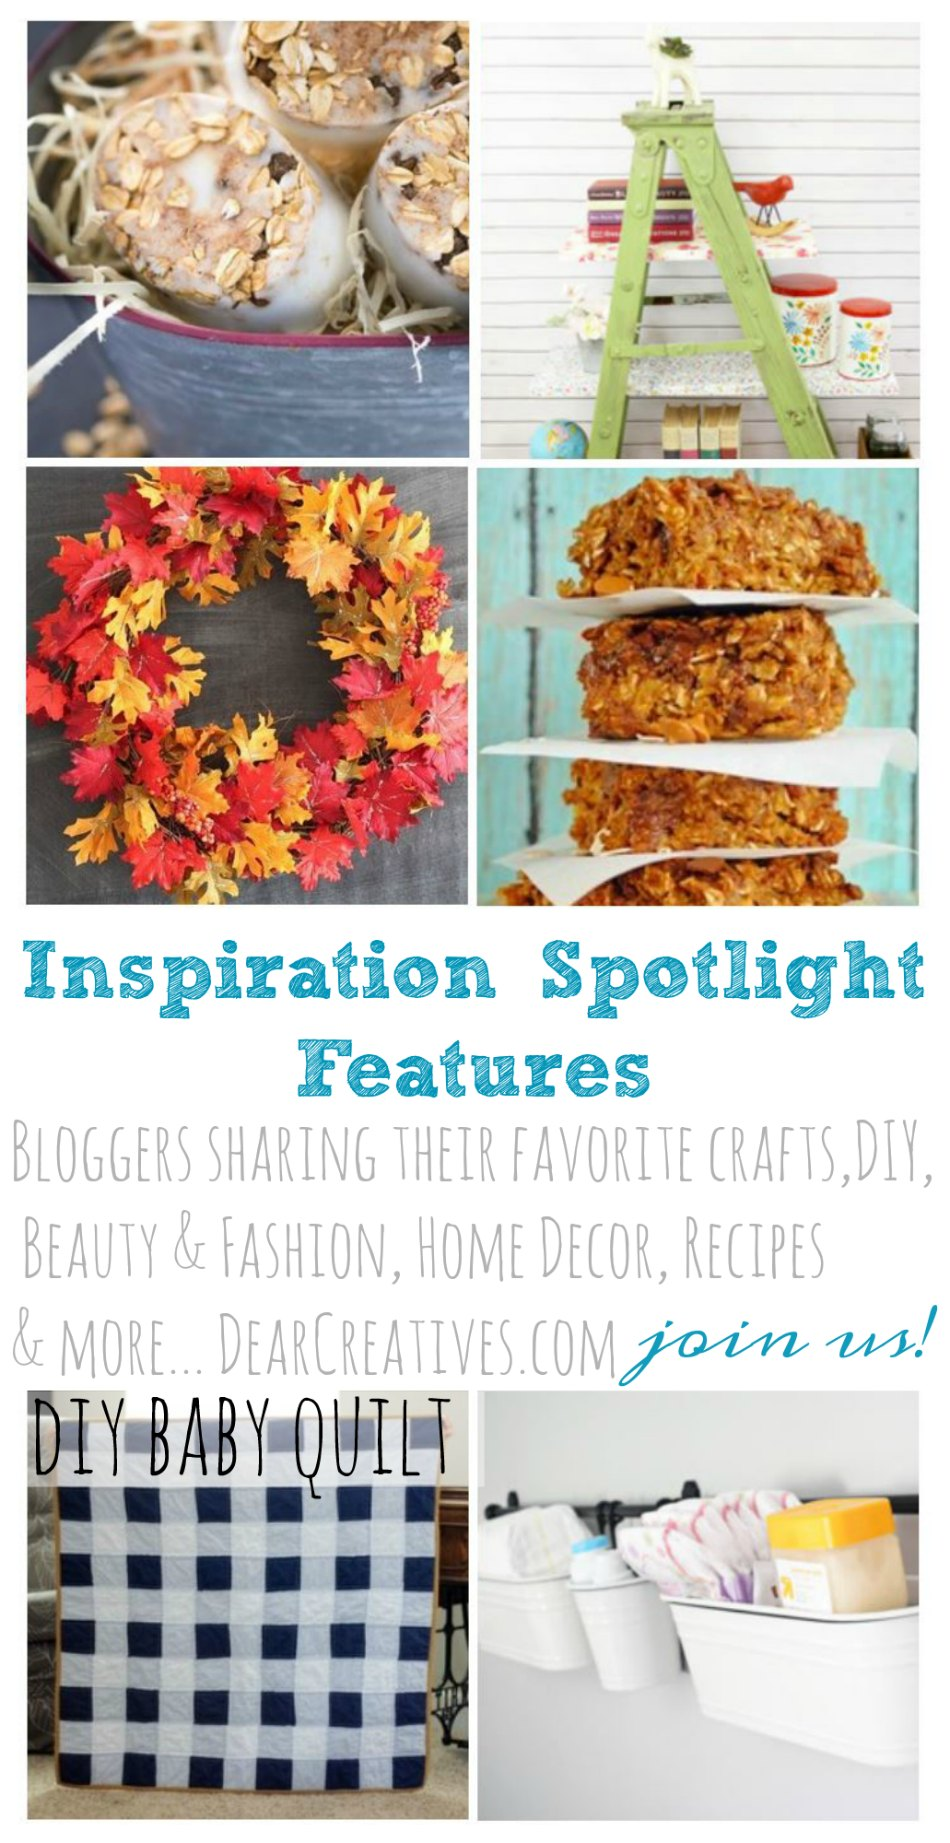 Linkup Party Inspiration Spotlight 209 DearCreatives.com bloggers sharing their favorite crafts, DIY beauty and fashion, home decor, recipes and more! So many ideas to pick from! Join us every Friday